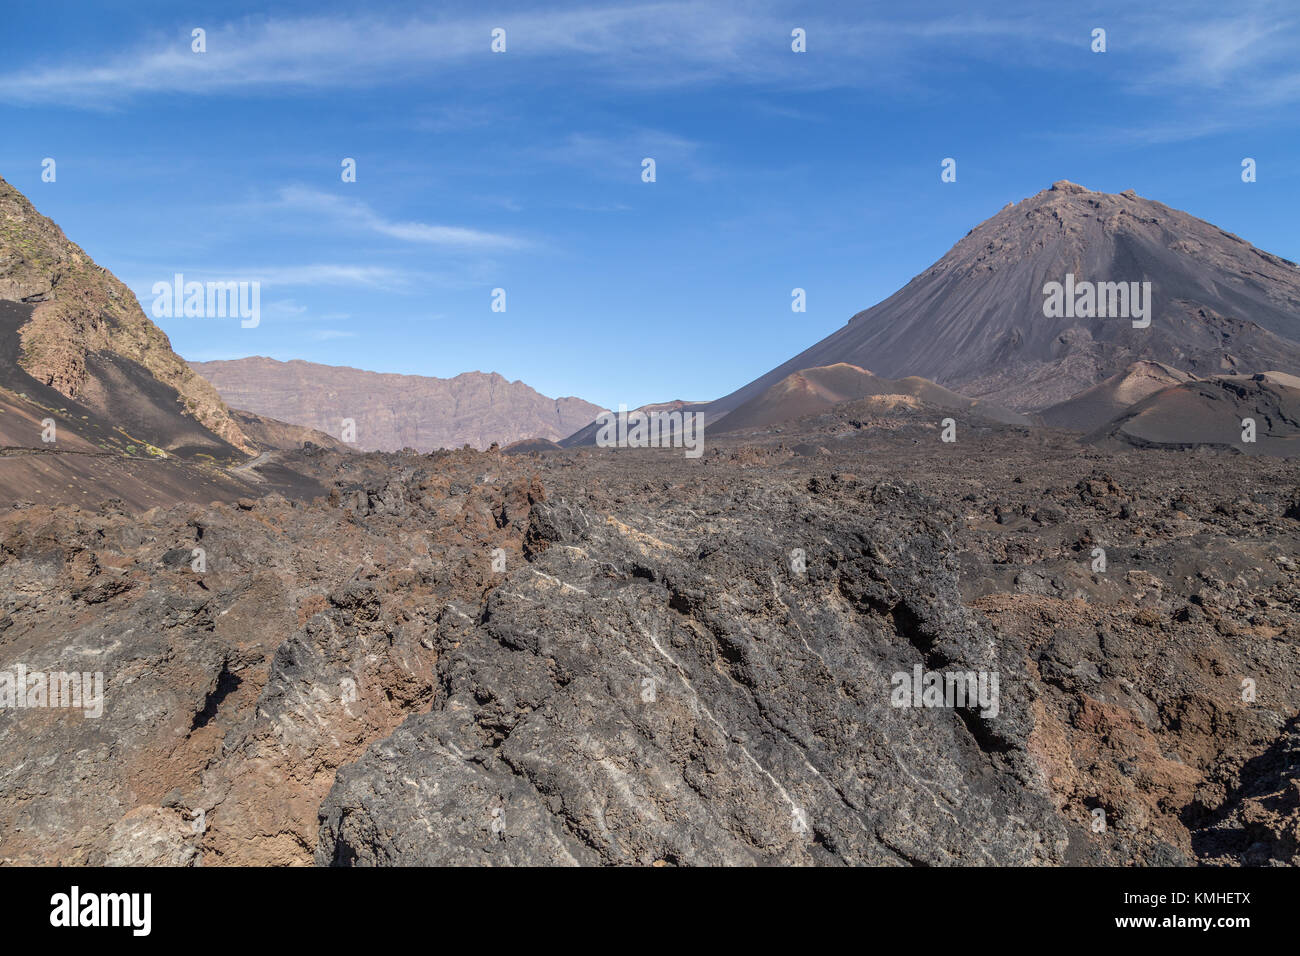 Pico do Fogo and solidified lava in Cha das Caldeiras in the Parque Natural do Fogo on the island of Fogo, Cape - Stock Image